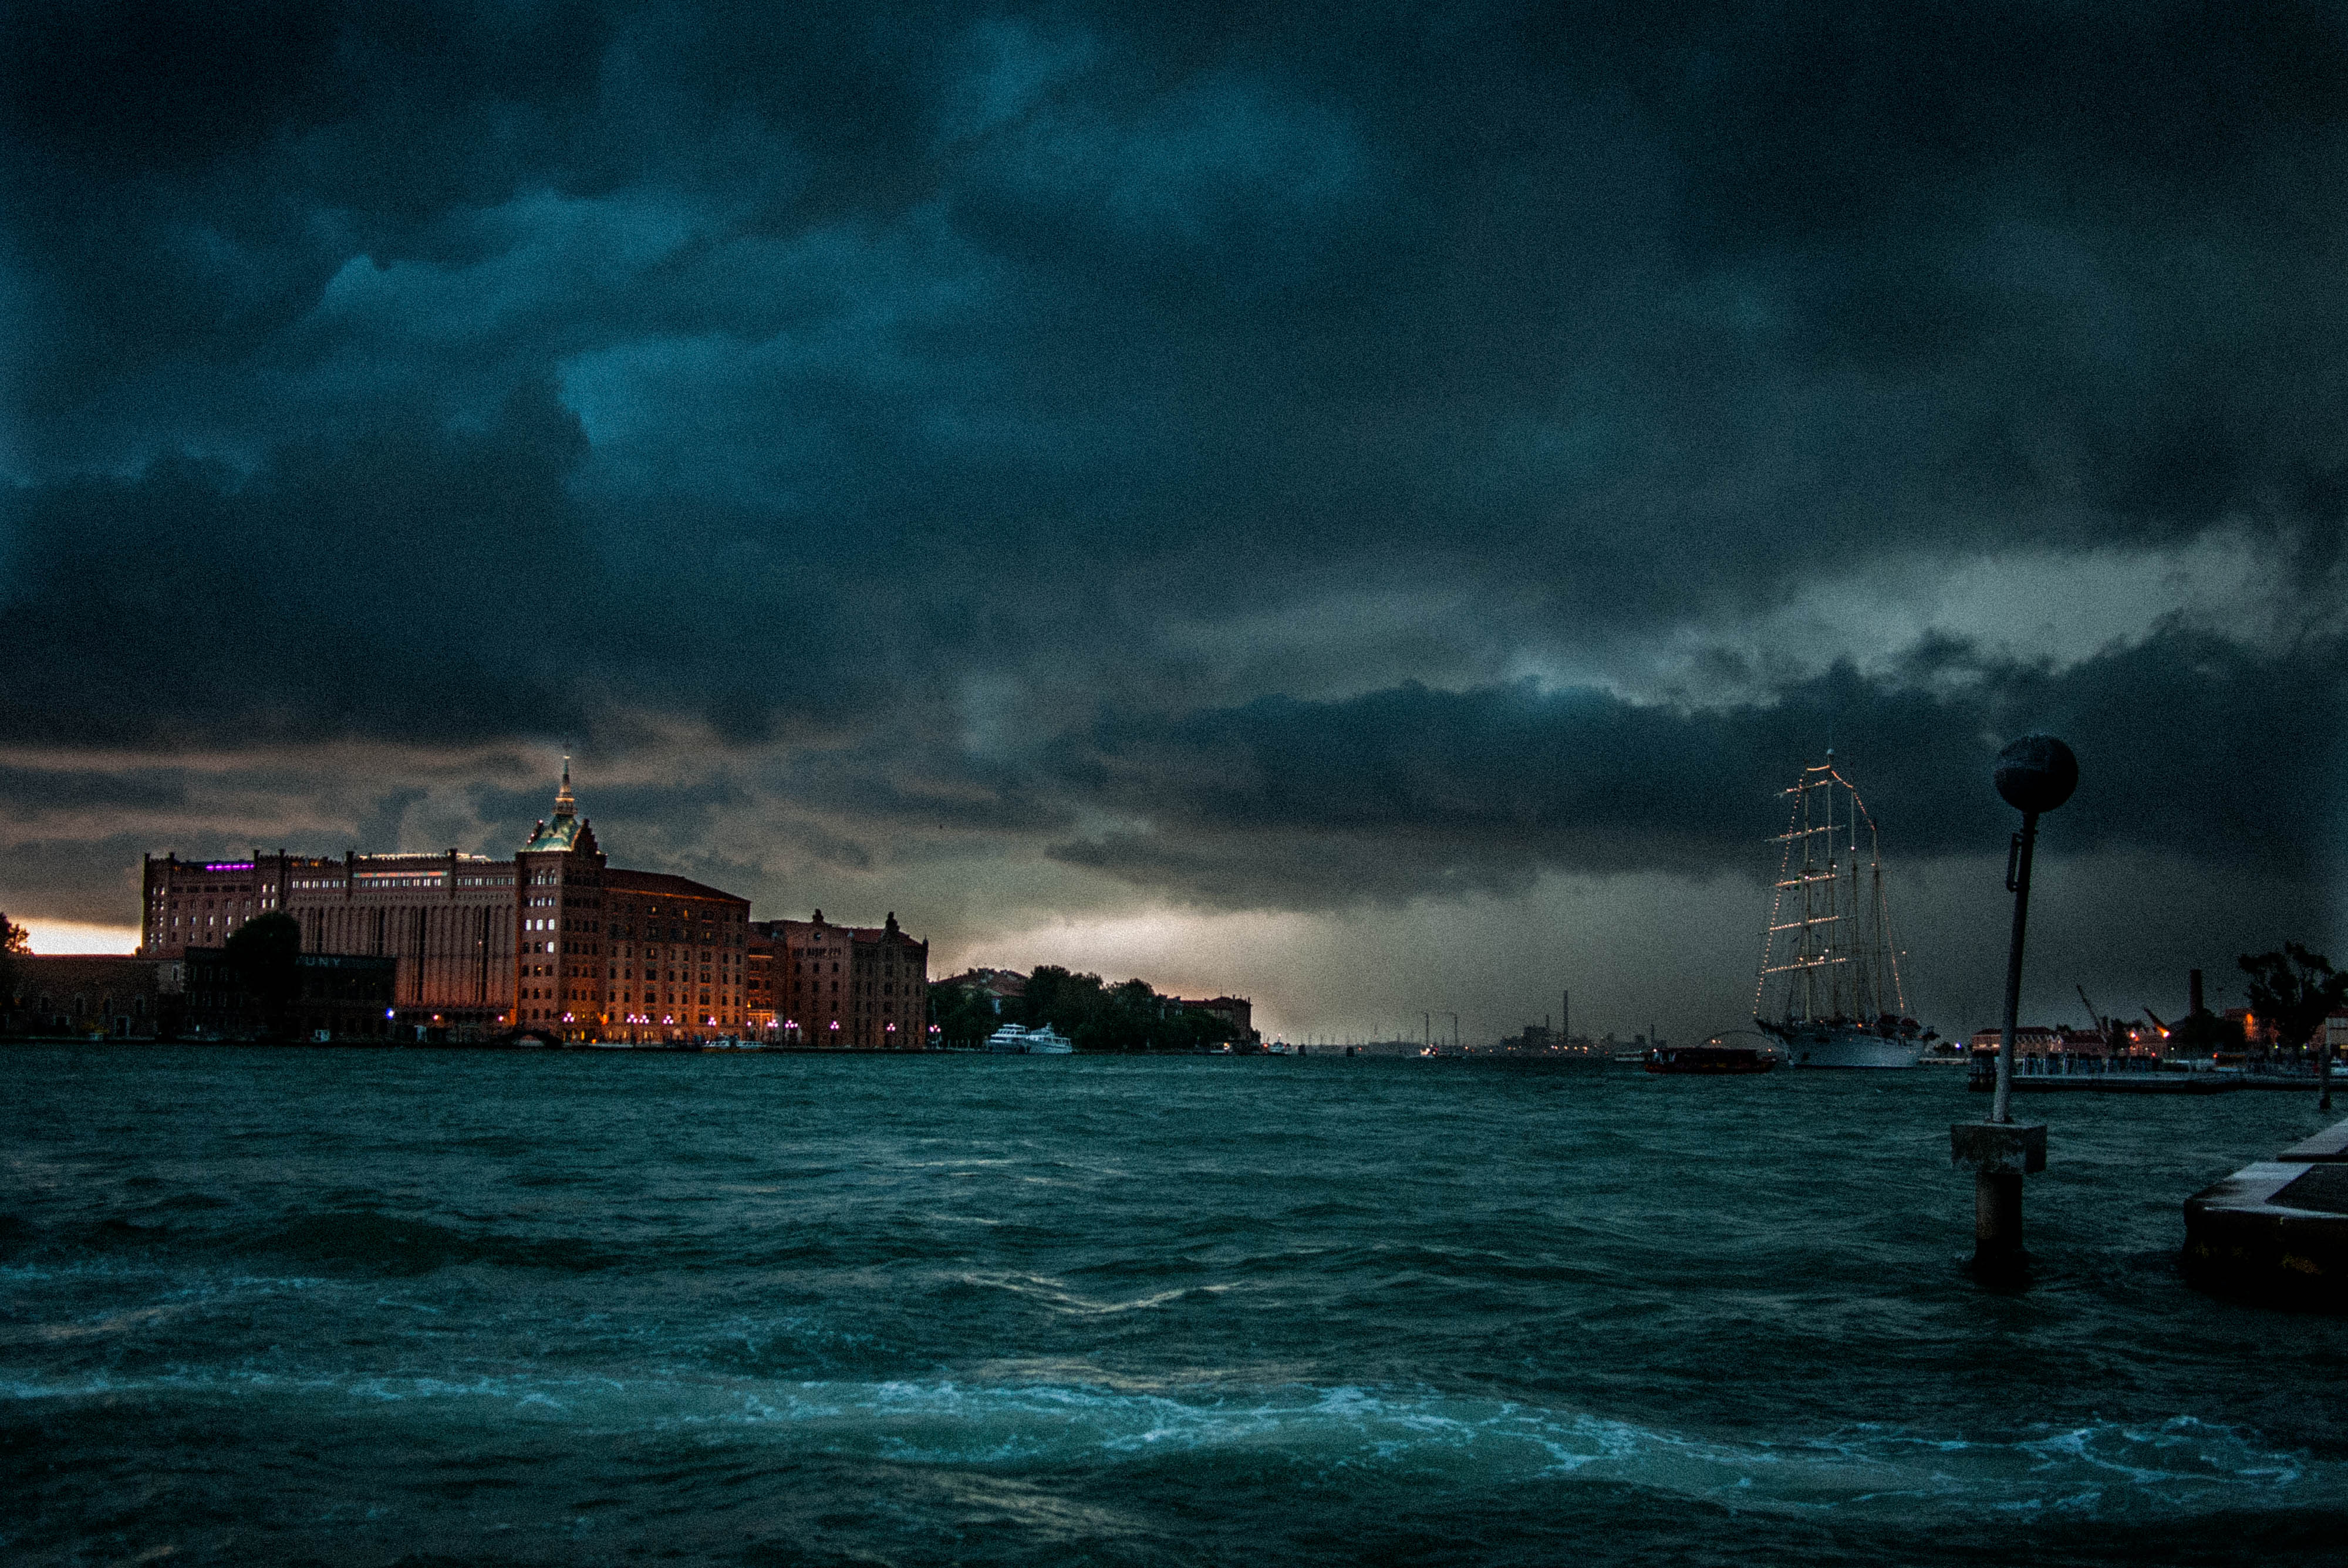 Storm in Venise #9